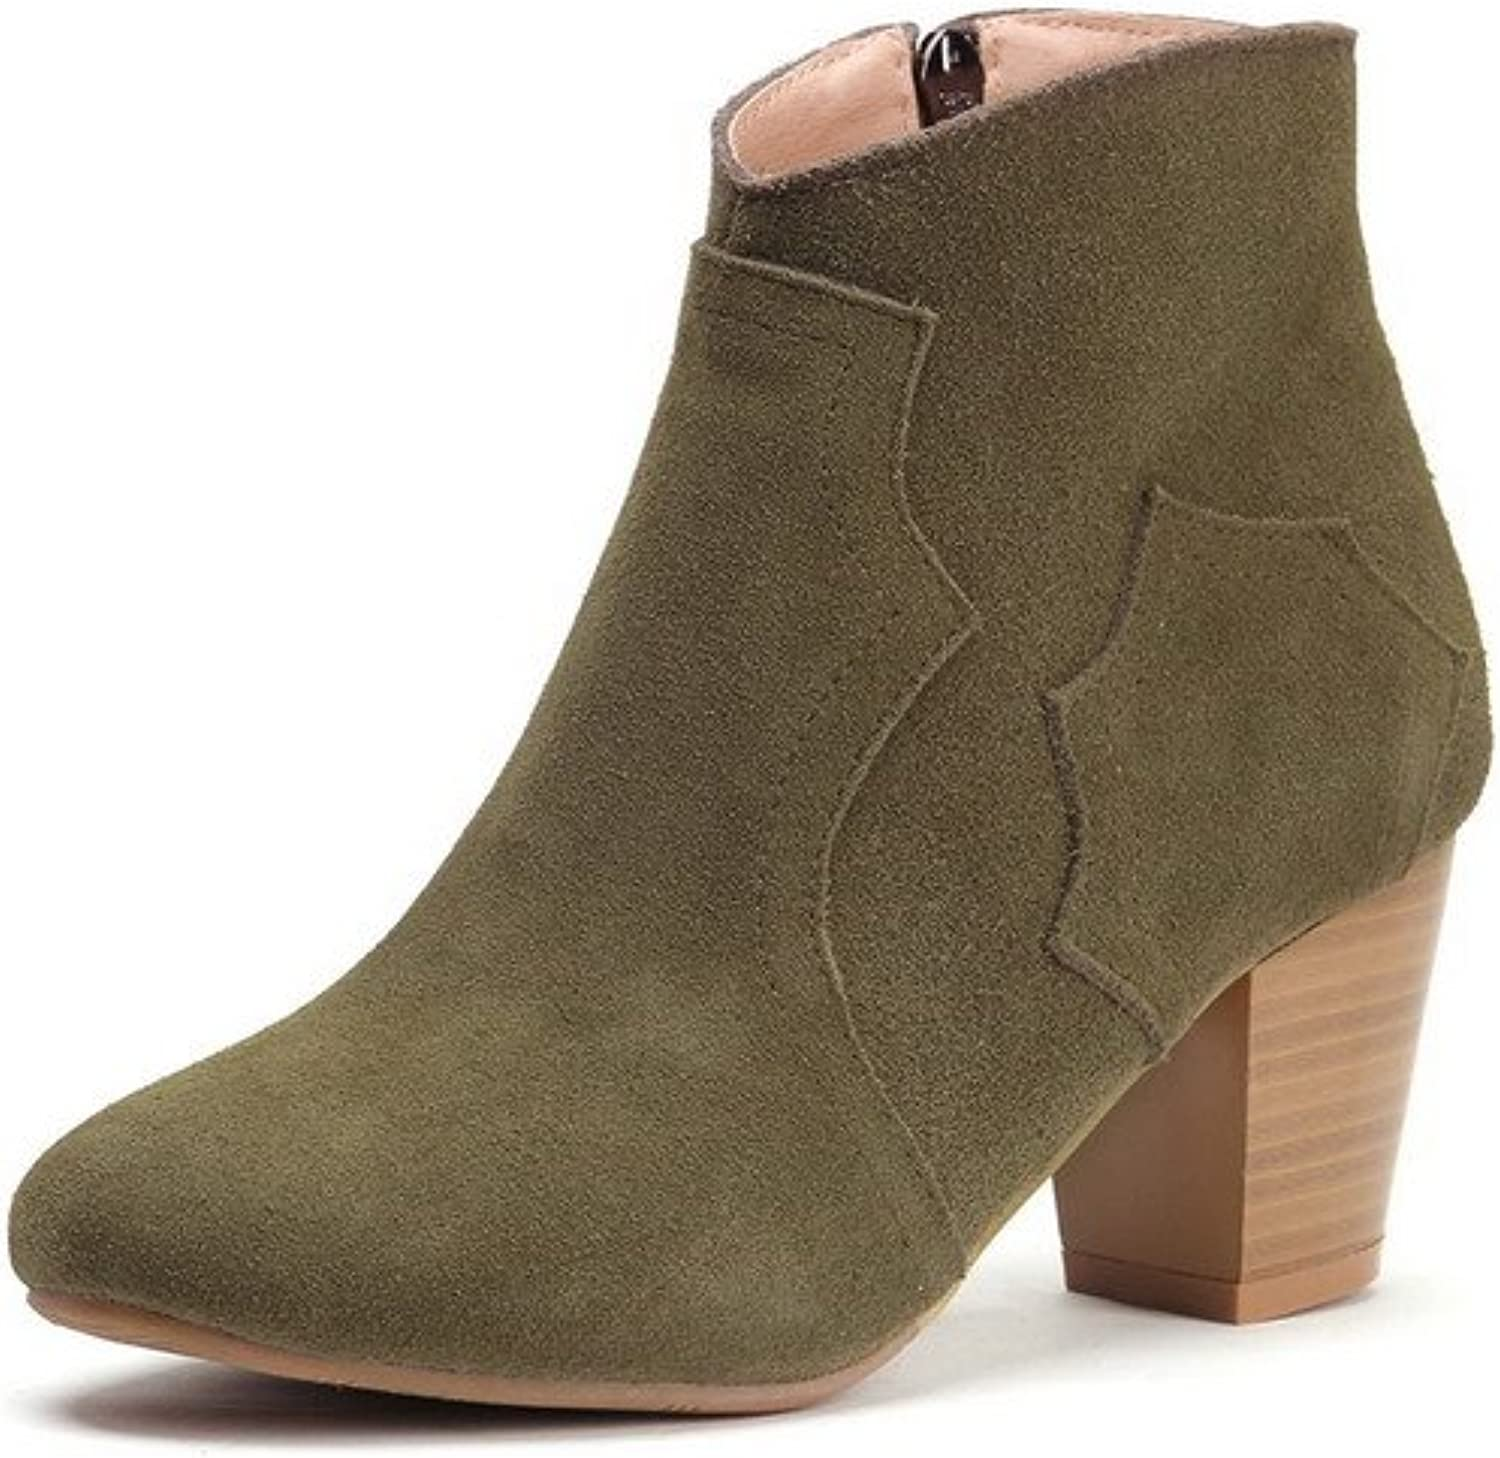 AmoonyFashion Women's Round-Toe Closed-Toe Kitten-Heels Boots with Chunky Heels and Zippers